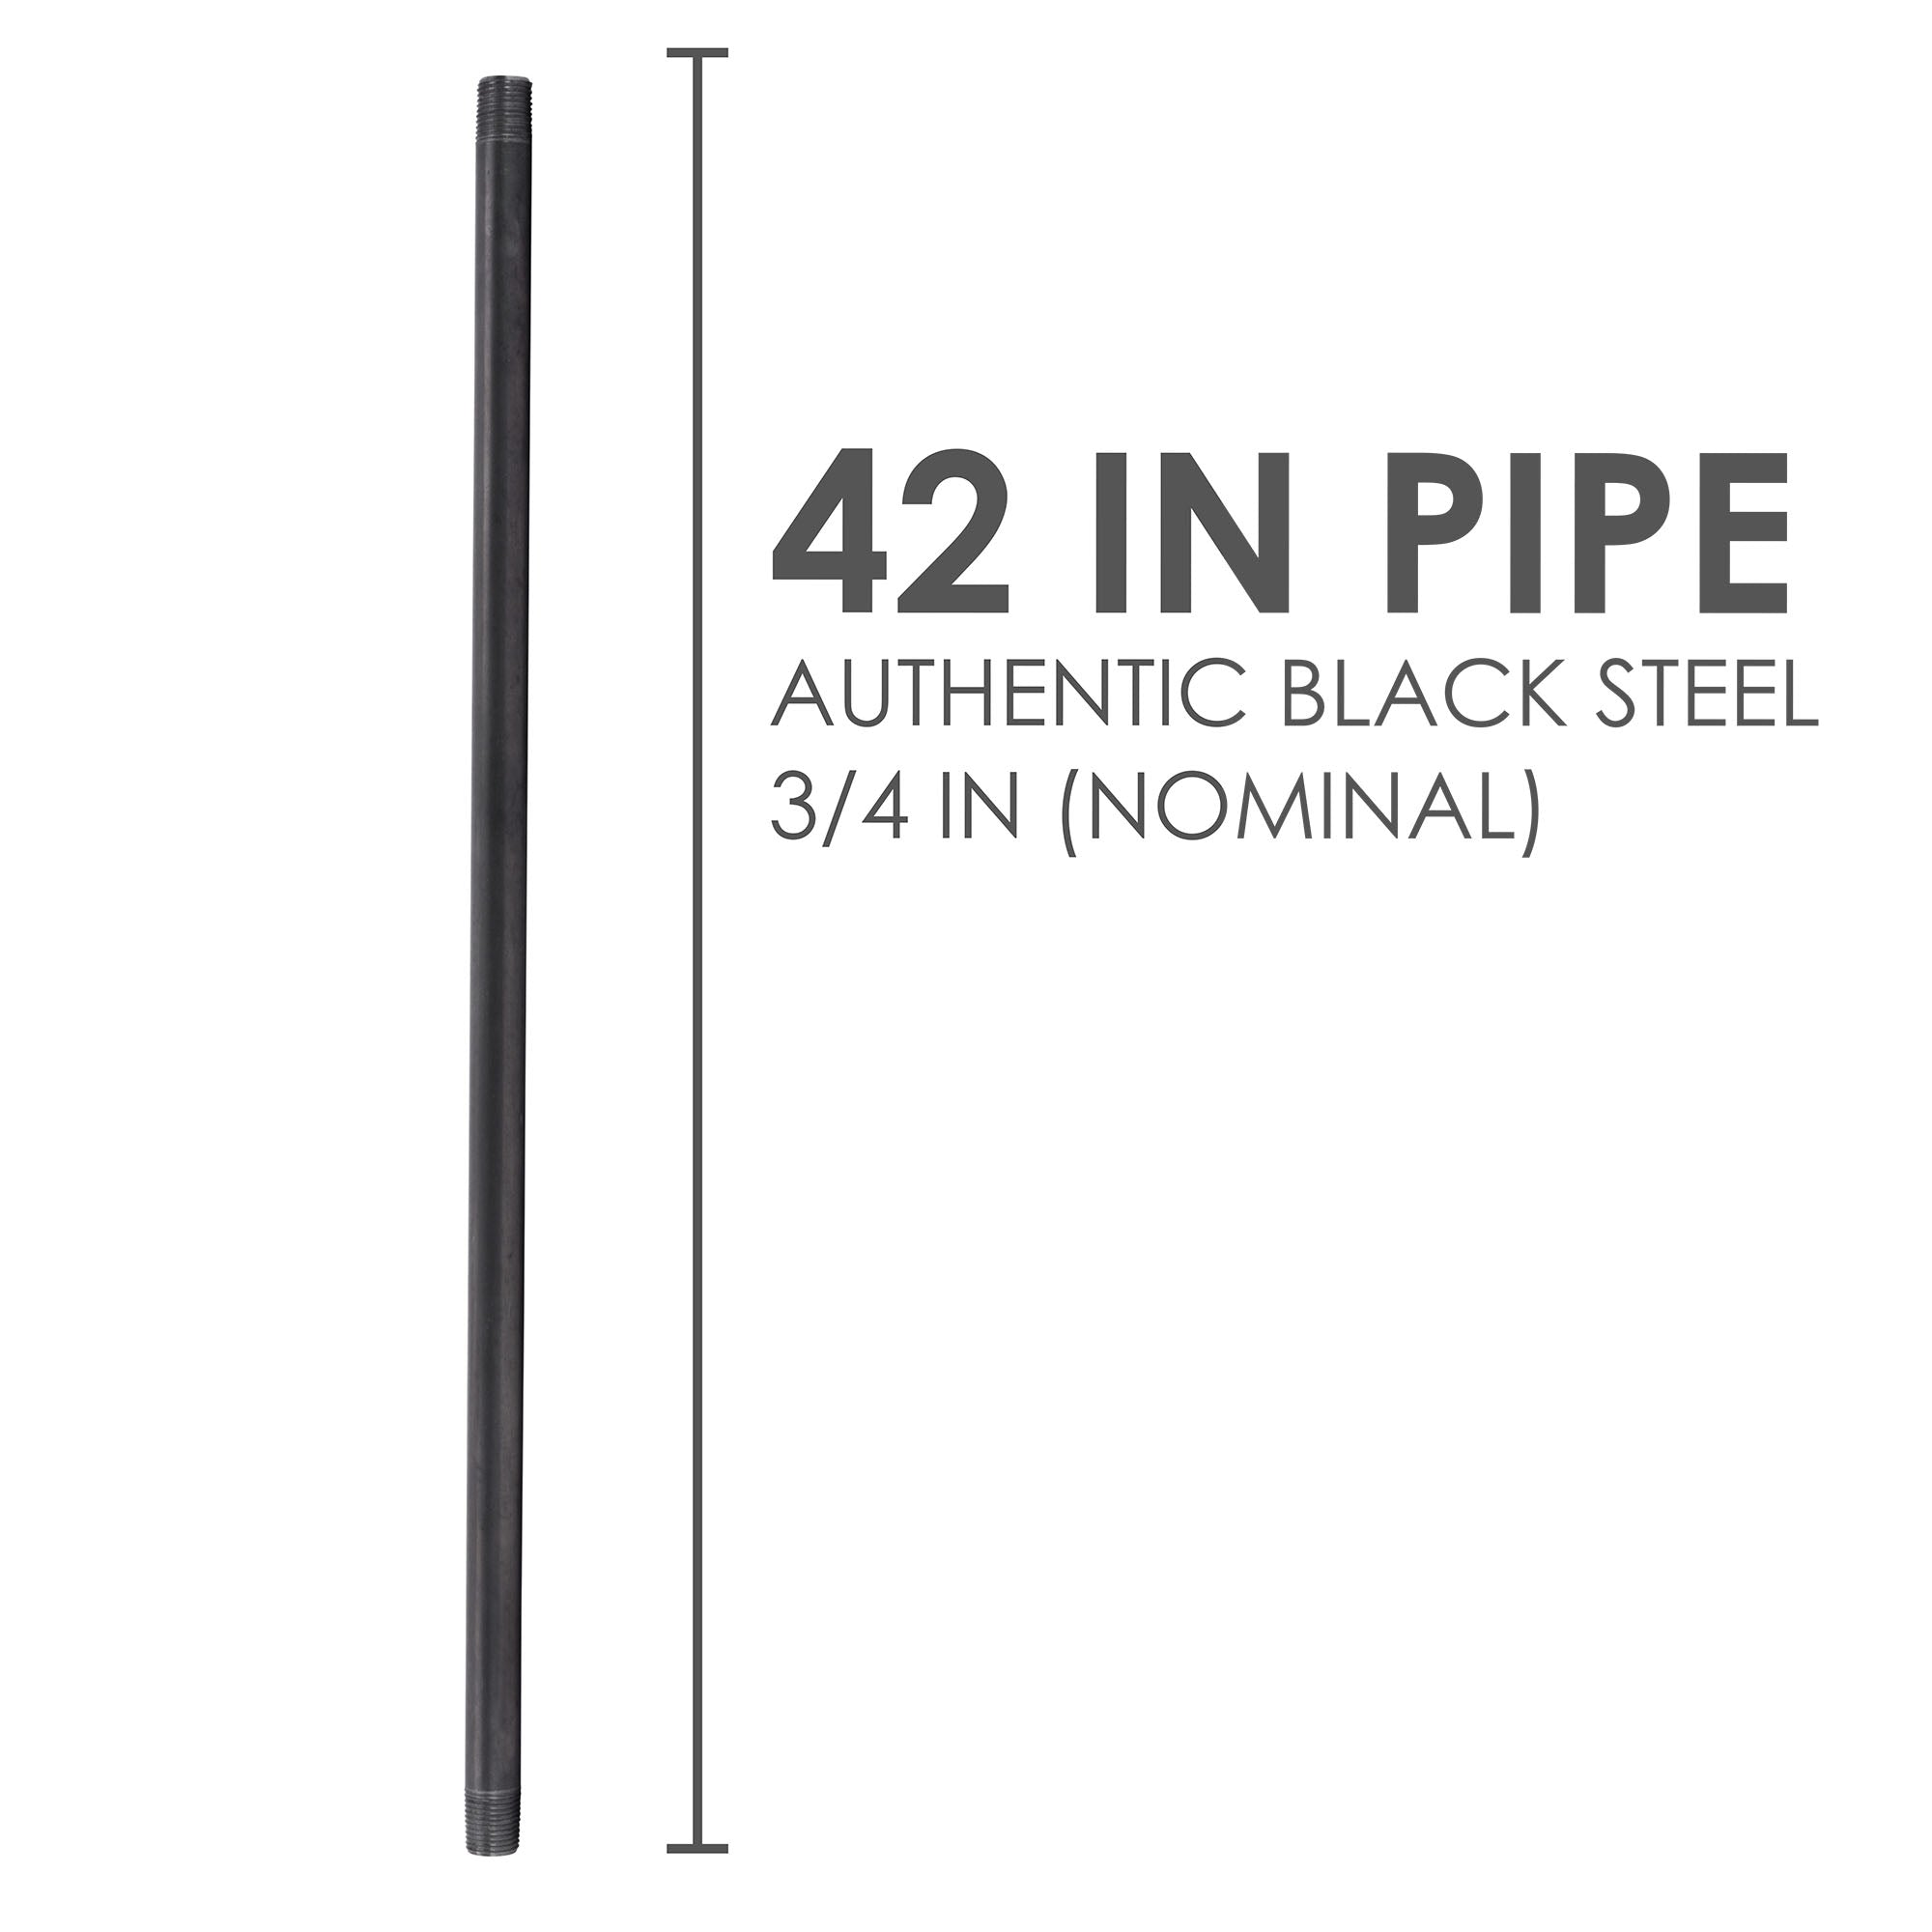 3/4 In X 42 In Black Pipe - Pipe Decor